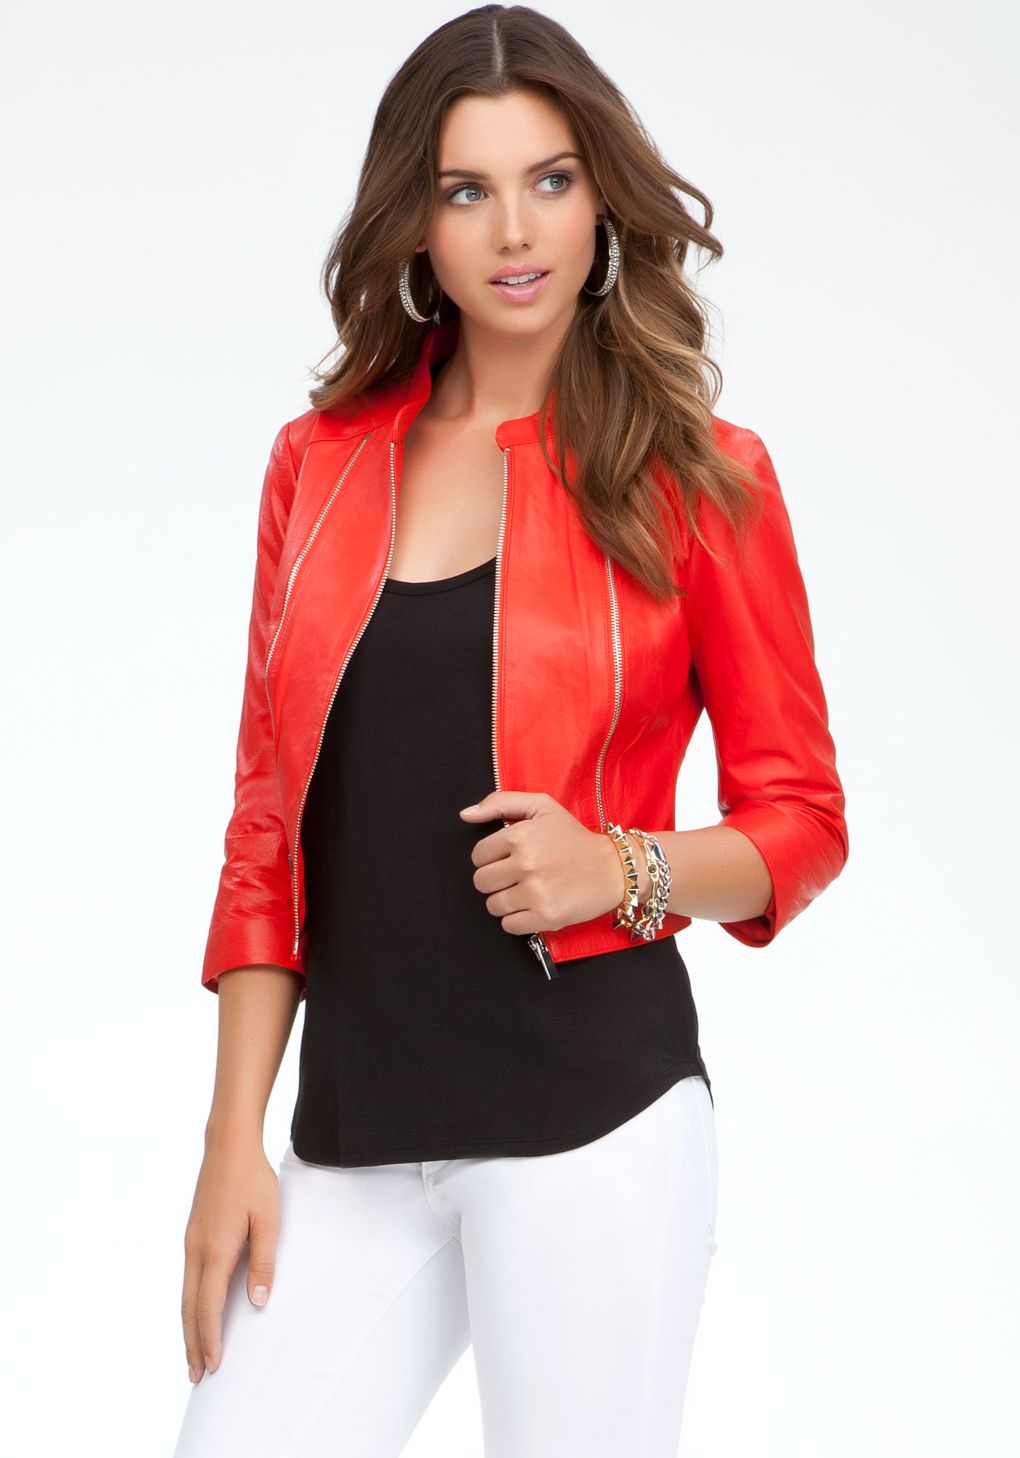 Bebe Red Cropped Leather Jacket Lyst Cropped Leather Jacket Leather Jackets Women Jackets For Women [ 1458 x 1020 Pixel ]